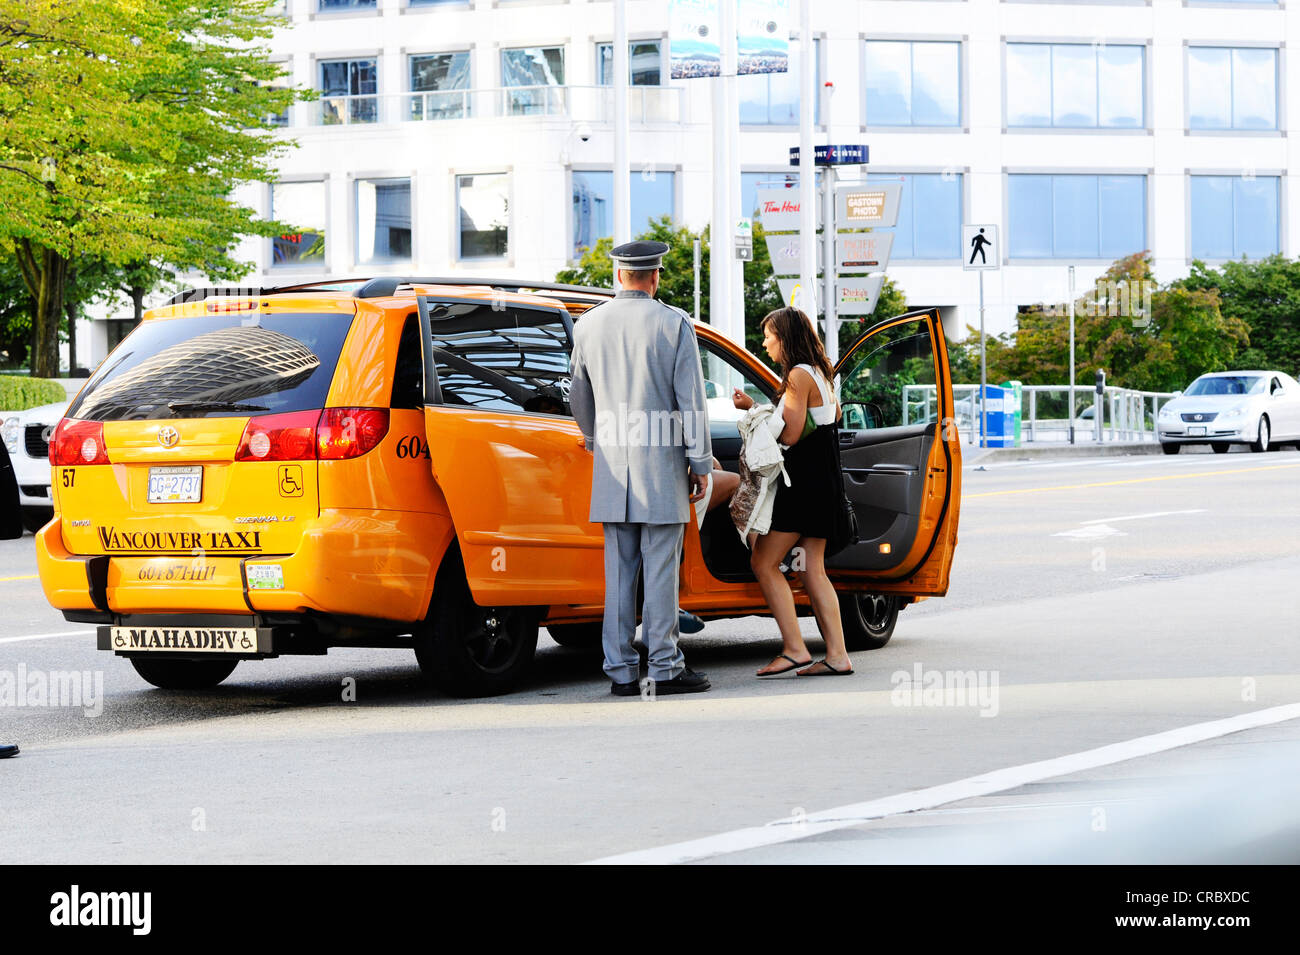 A woman getting into a taxi outside of an in Vancouver. - Stock Image